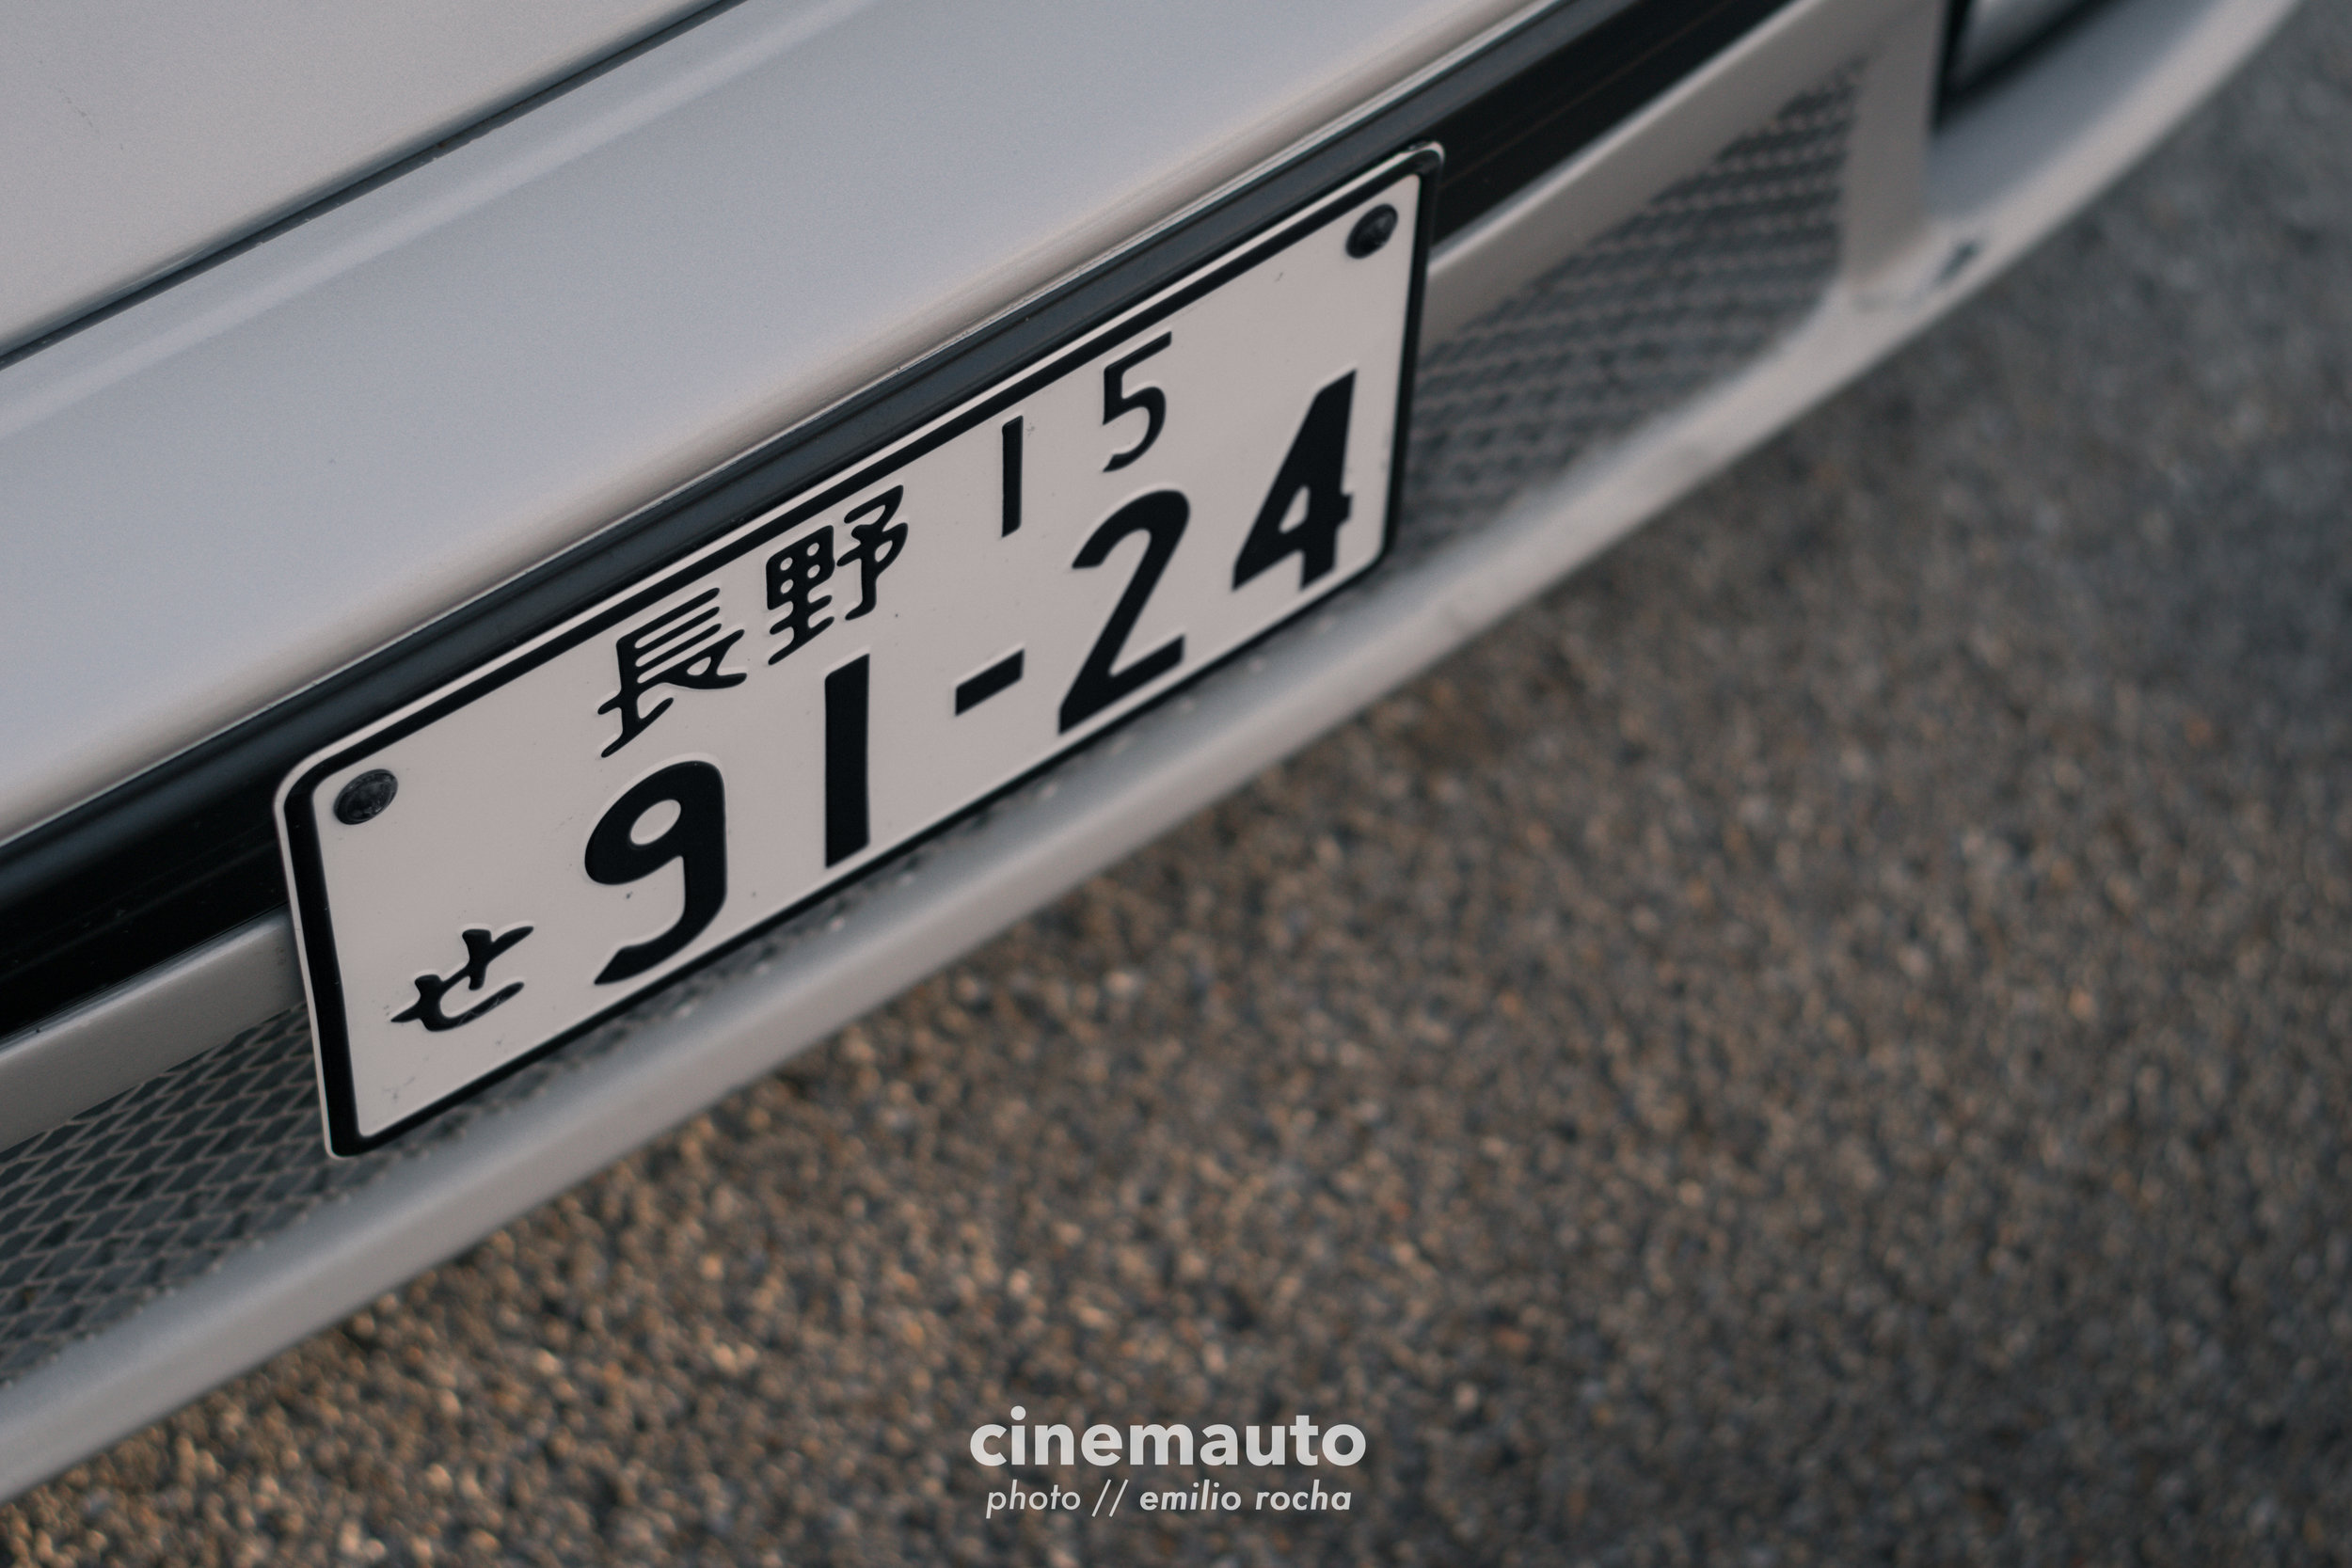 Cinemauto-RX7-11.jpg